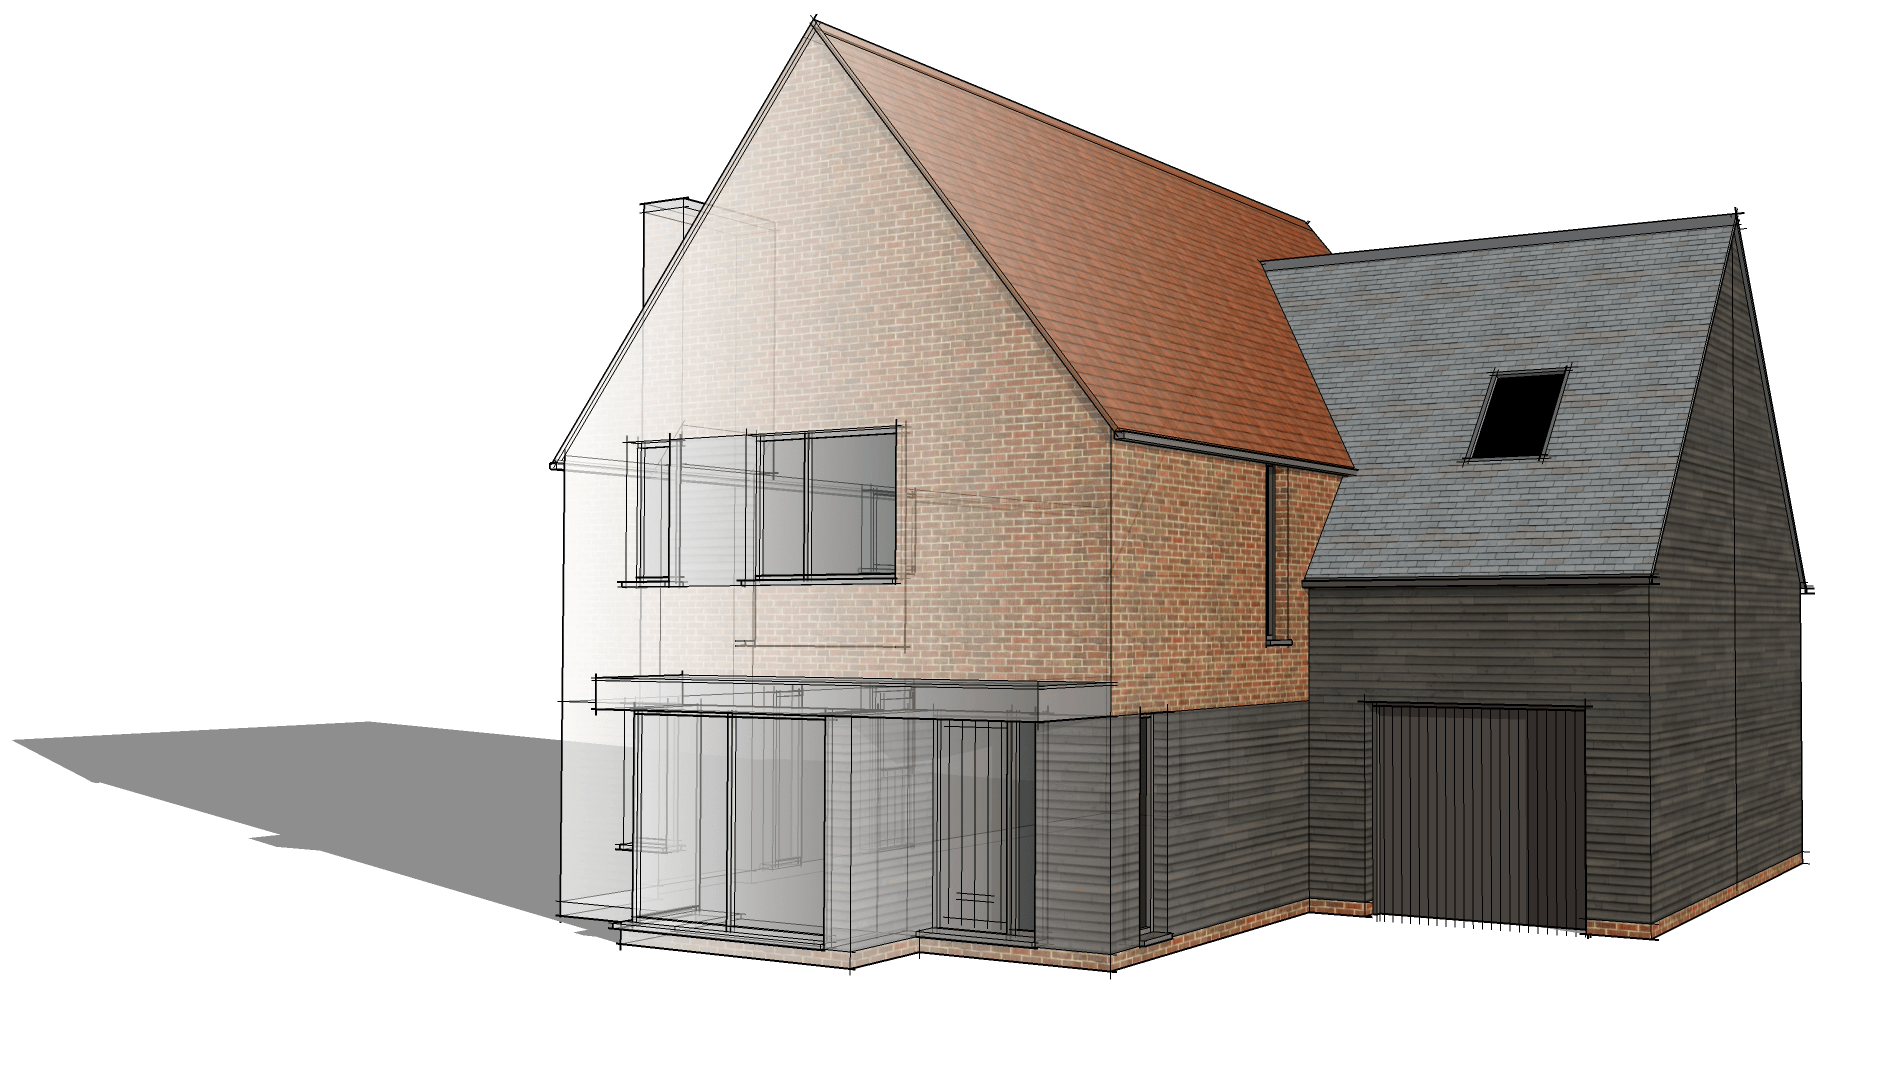 Outline application submitted for 5 modern village houses…